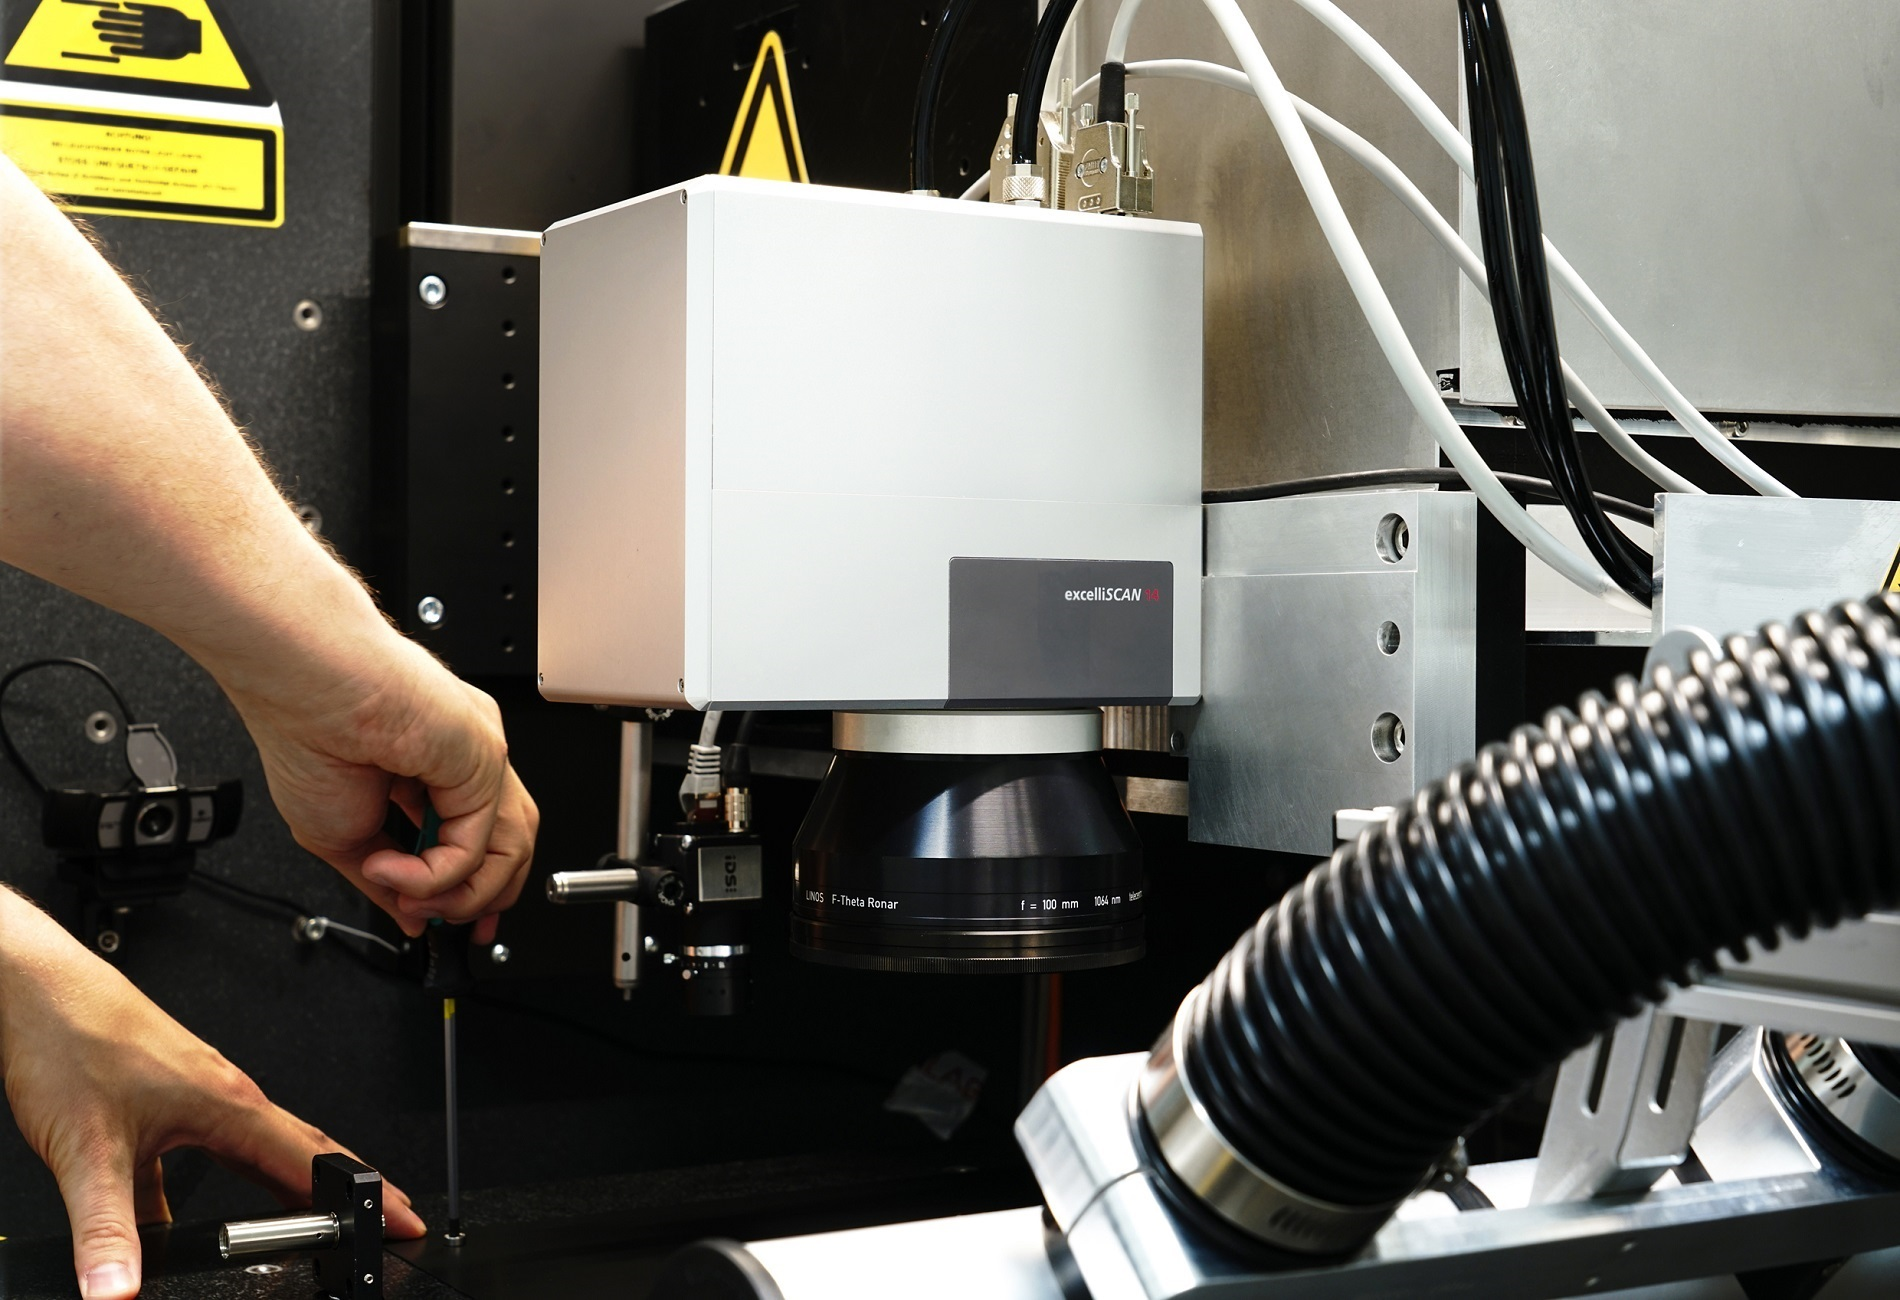 The excelliSCAN scan head is perfectly suited for laser micro-machining and additive manufacturing